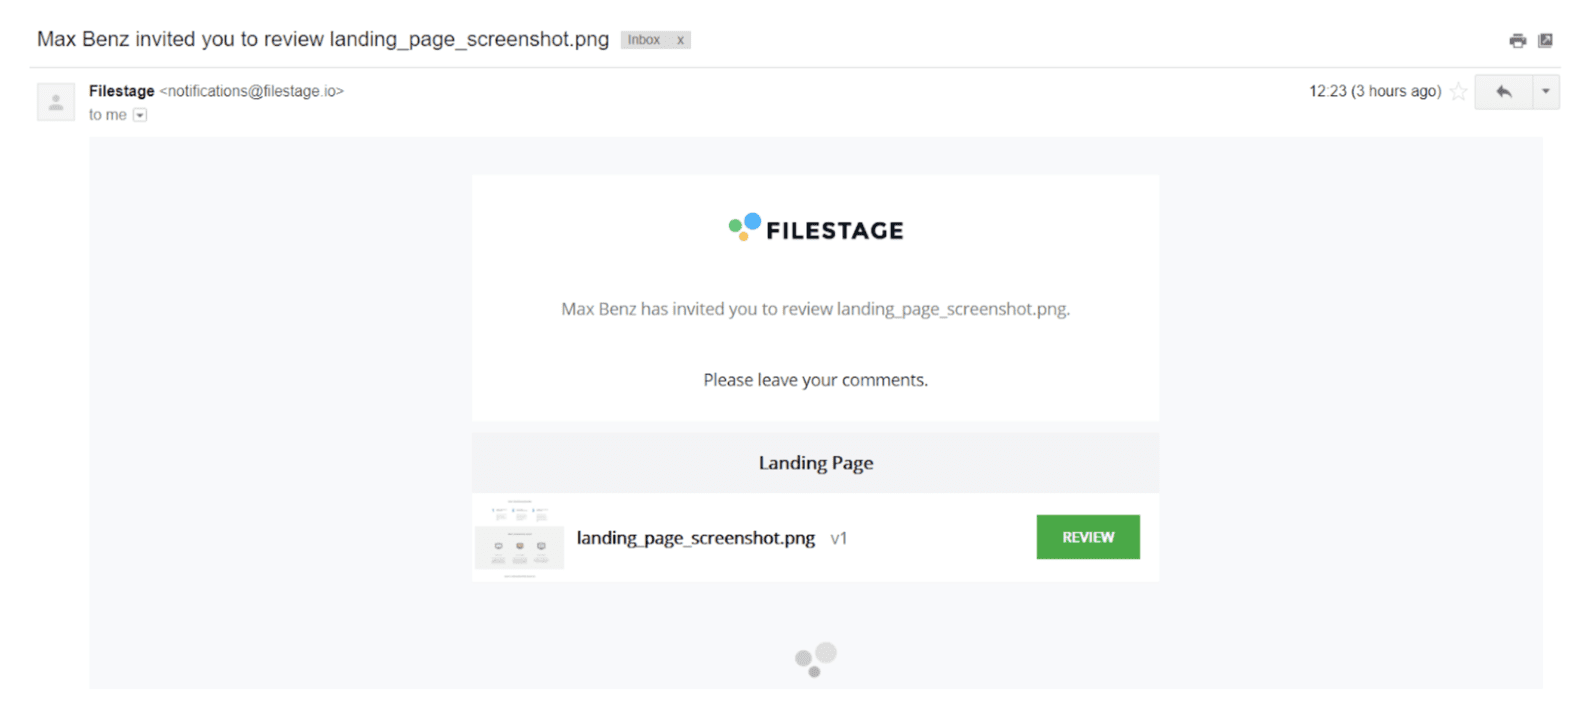 filestage reviewer email